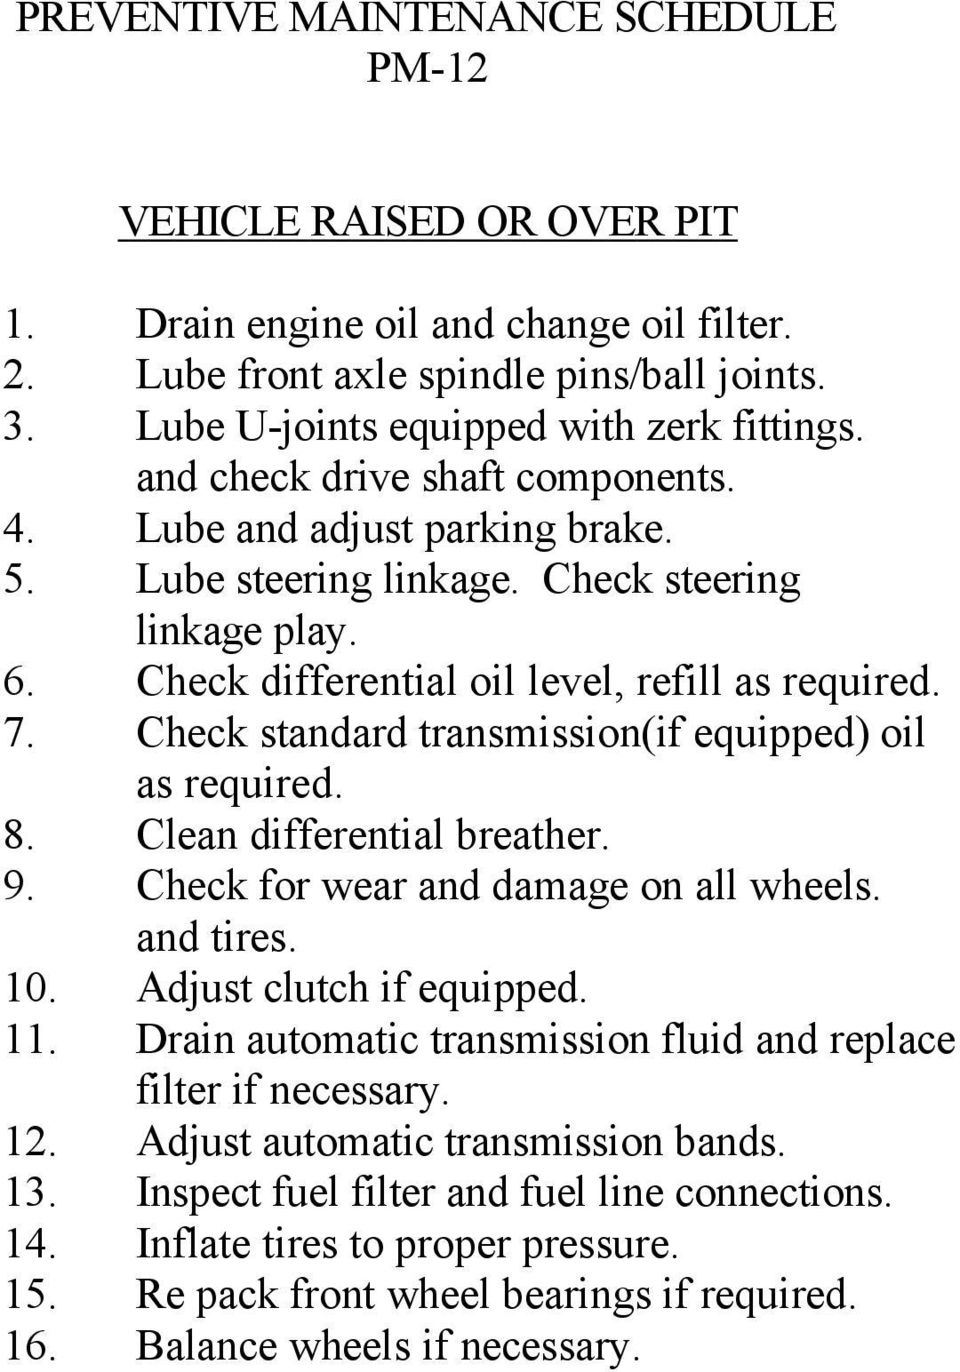 Check standard transmission(if equipped) oil as required. 8. Clean differential breather. 9. Check for wear and damage on all wheels. and tires. 10. Adjust clutch if equipped. 11.